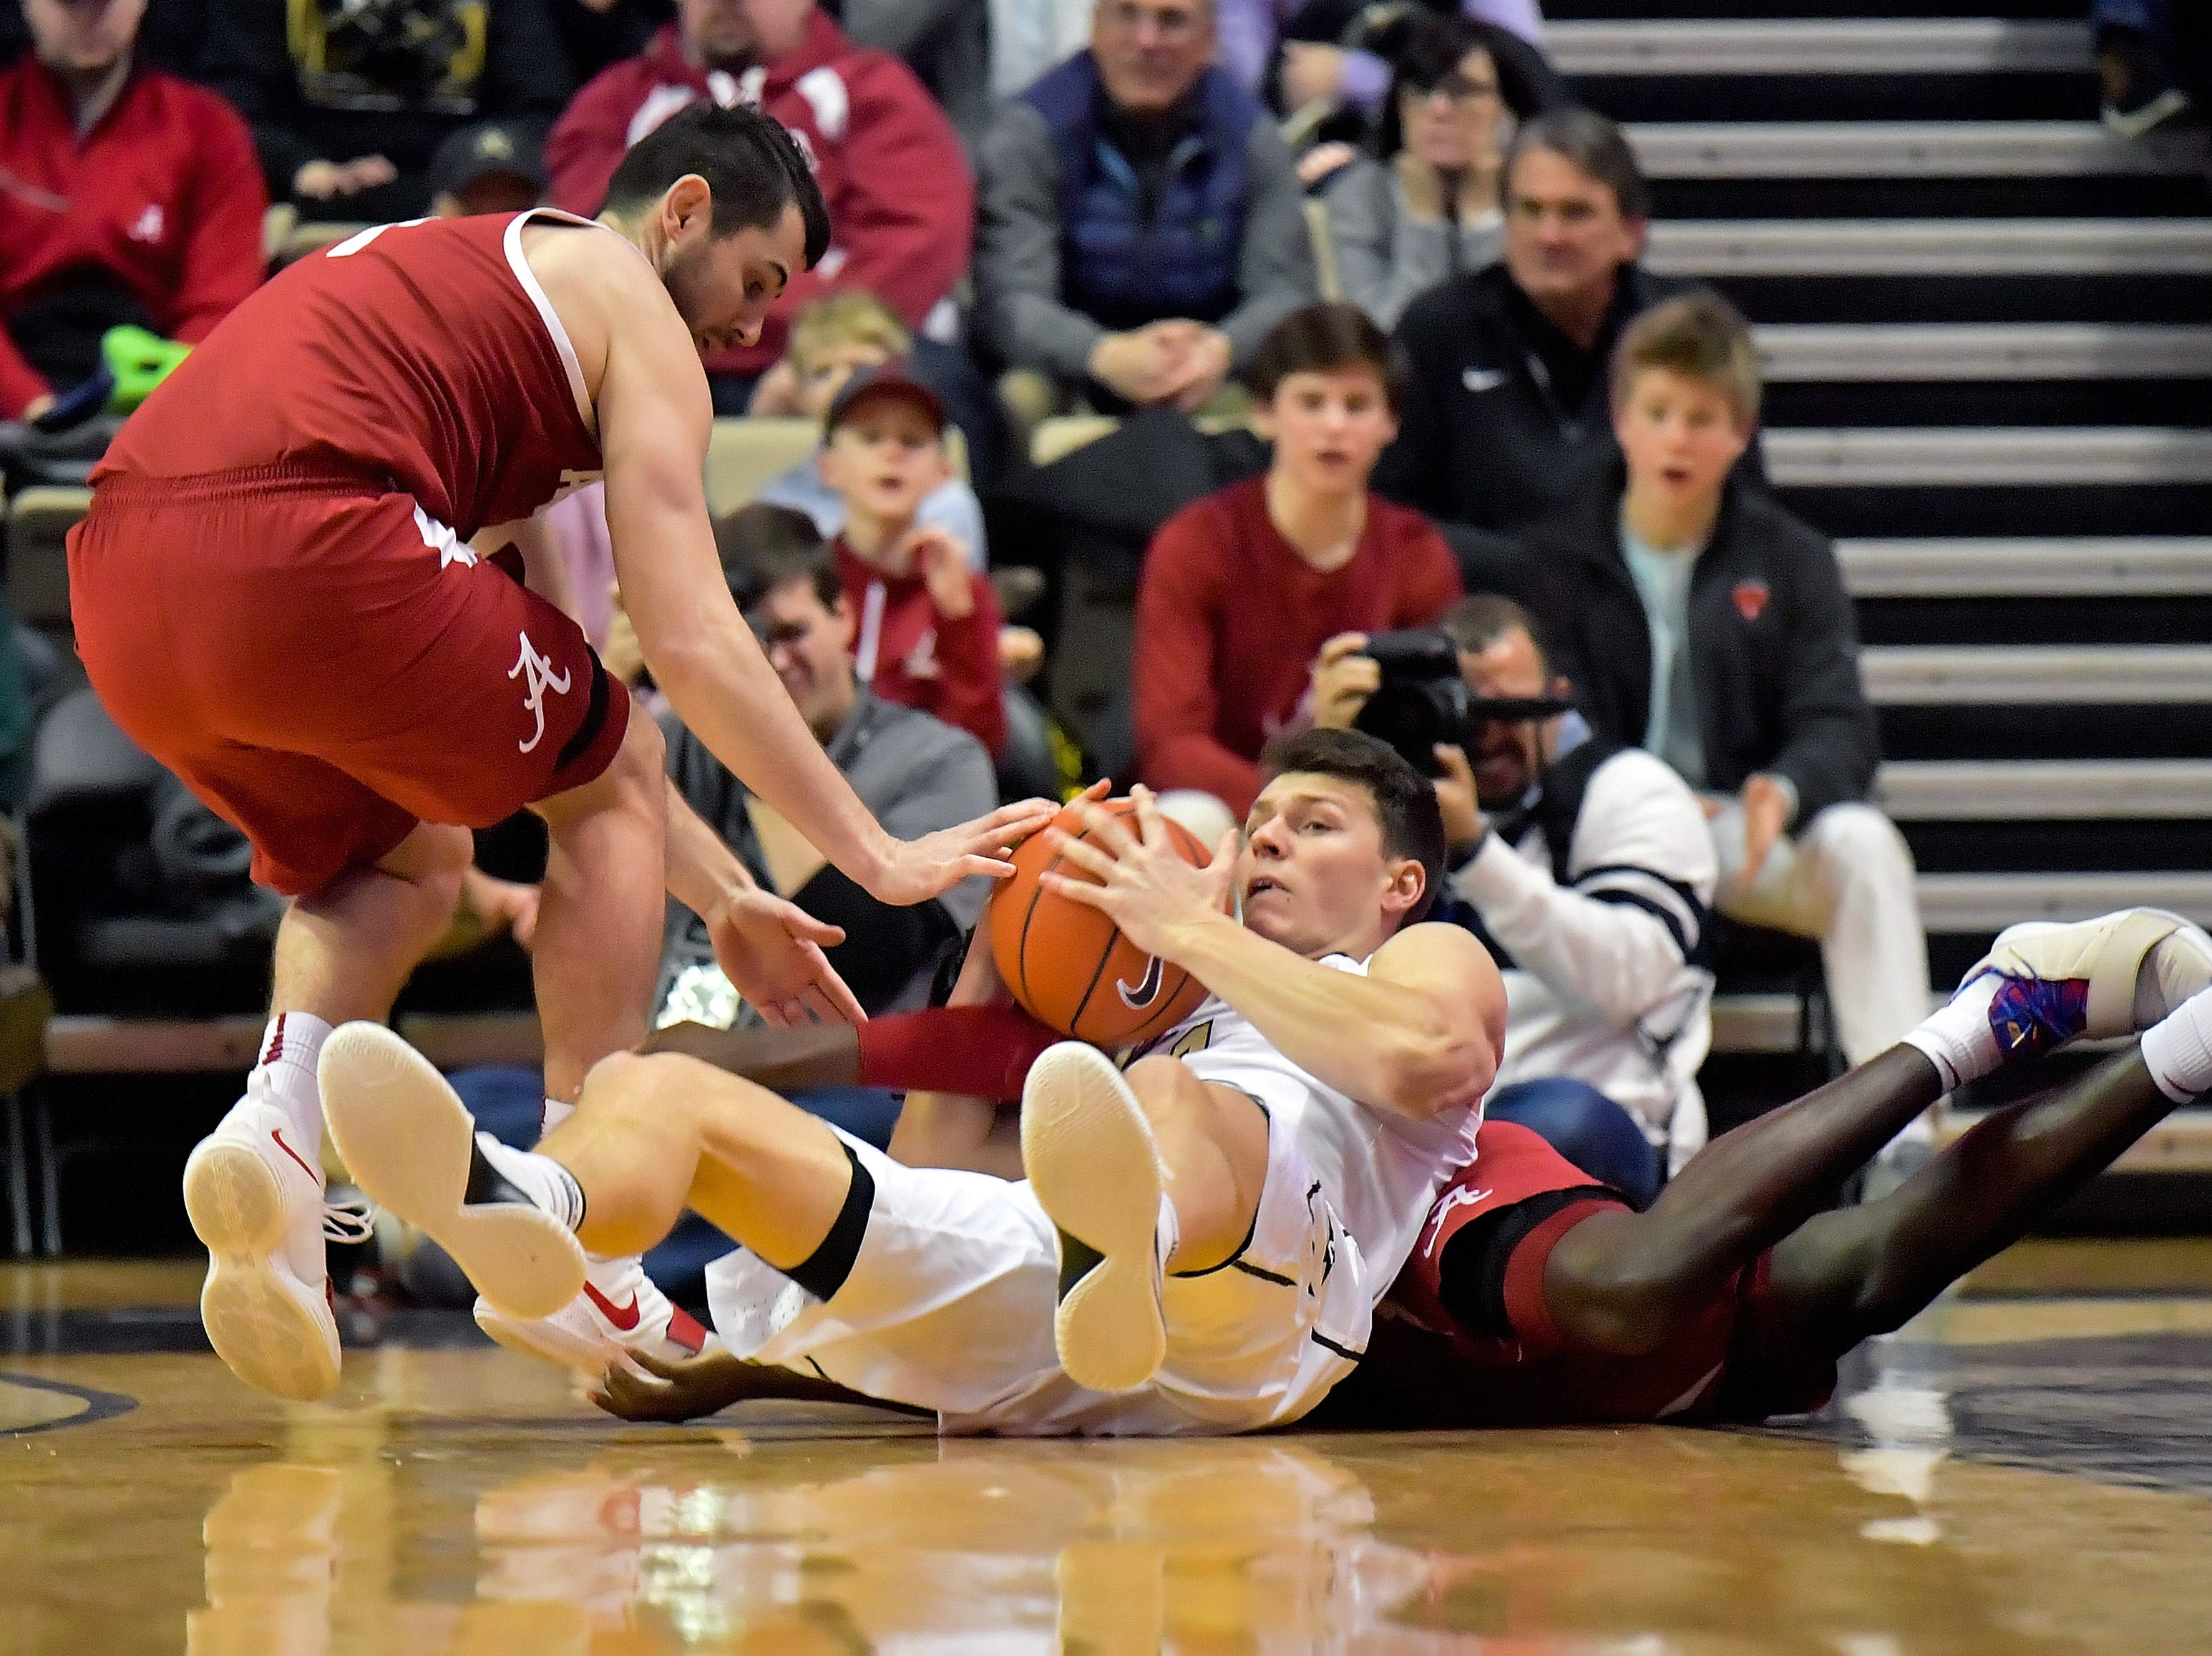 Feb 9, 2019; Nashville, TN, USA; Vanderbilt Commodores forward Yanni Wetzell (1) attempts to control the loose ball against Alabama Crimson Tide guard Riley Norris (1) during the first half at Memorial Gymnasium. Mandatory Credit: Jim Brown-USA TODAY Sports